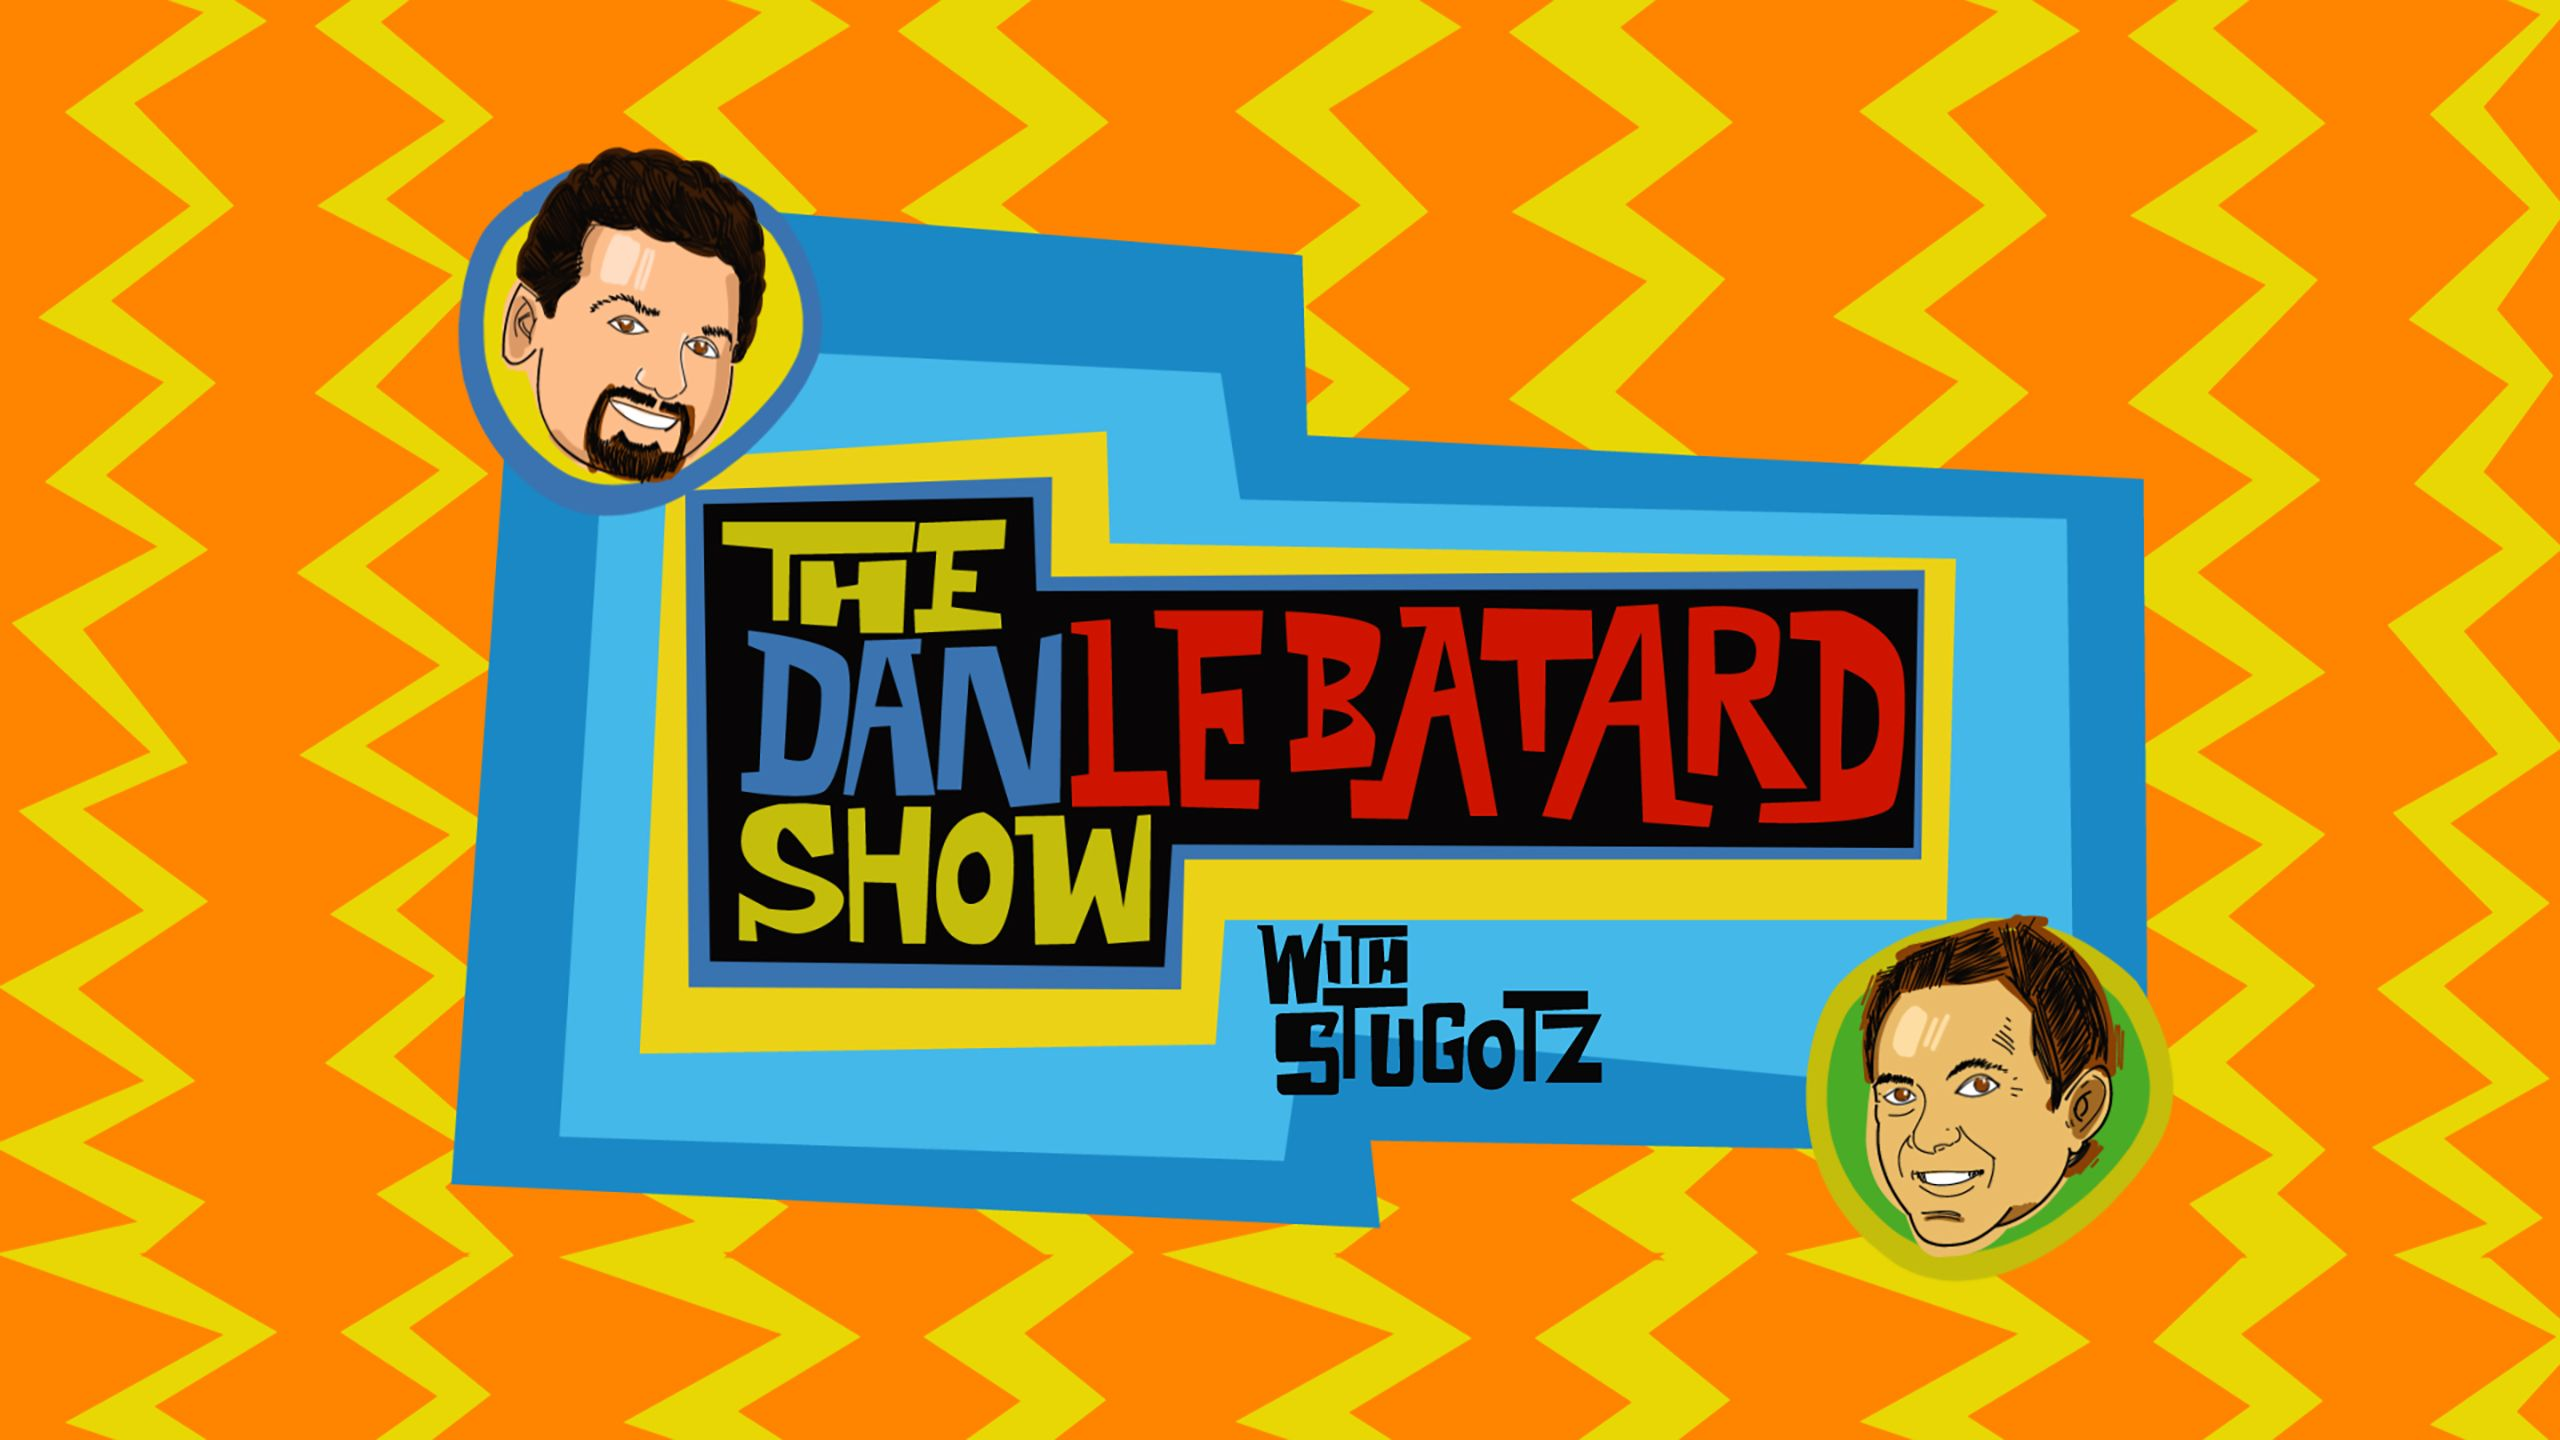 Tue, 7/17 - The Dan Le Batard Show with Stugotz Presented by Progressive